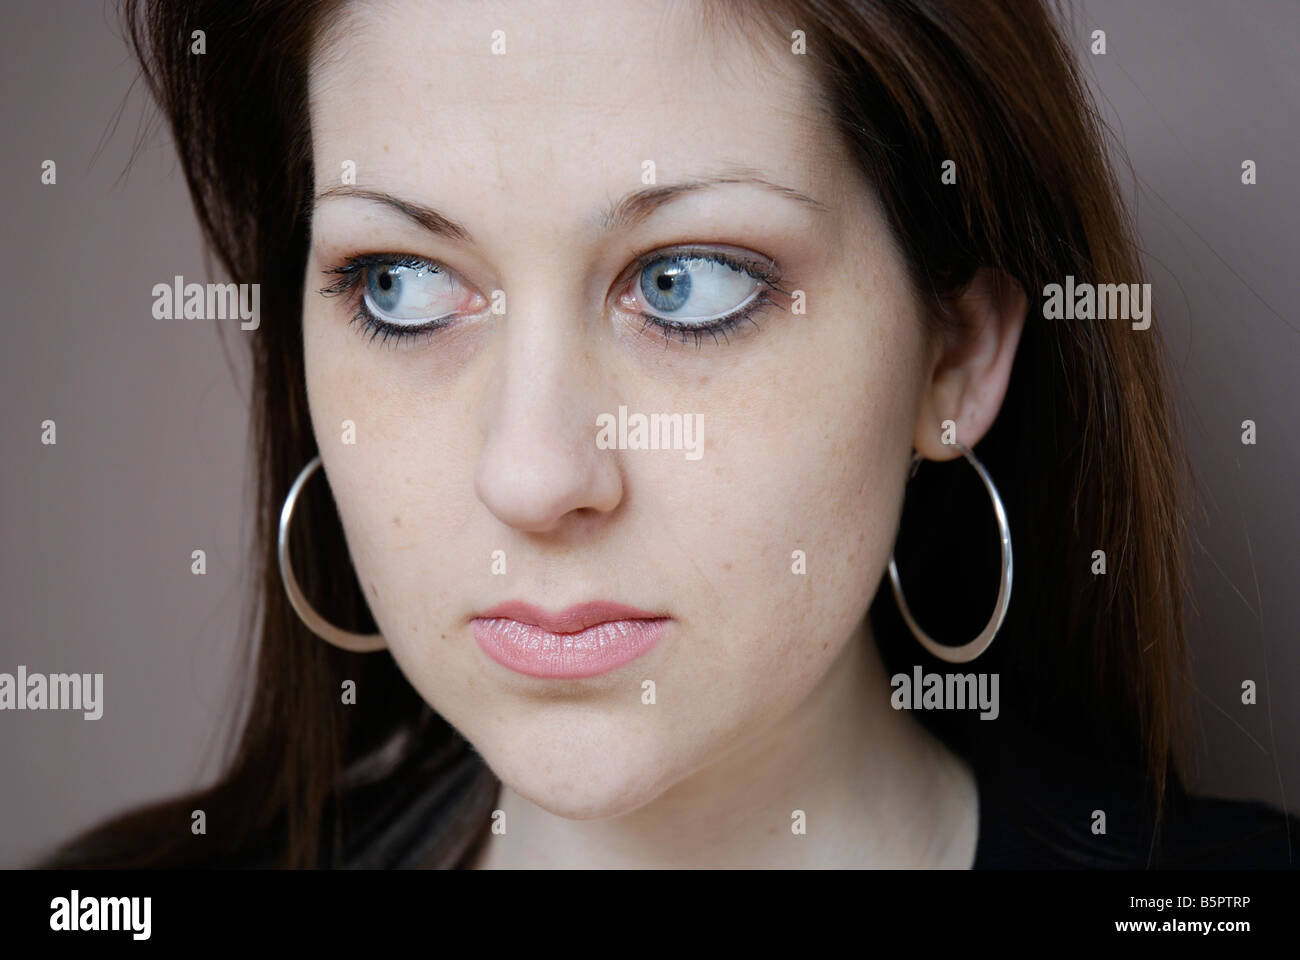 A young woman with an anxious expression - Stock Image